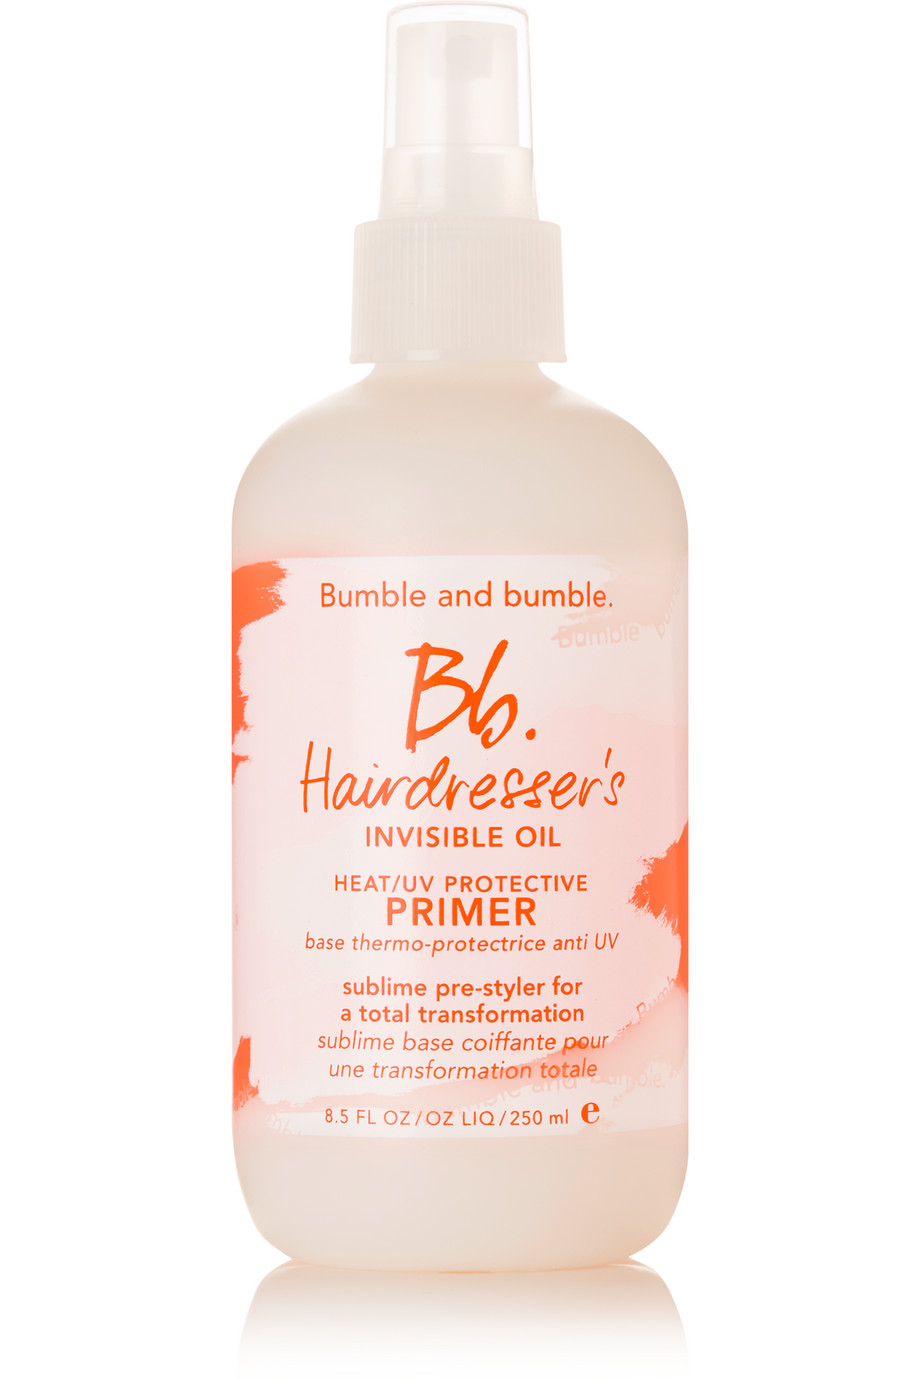 Hairdresser's Invisible Oil Primer, 250ml